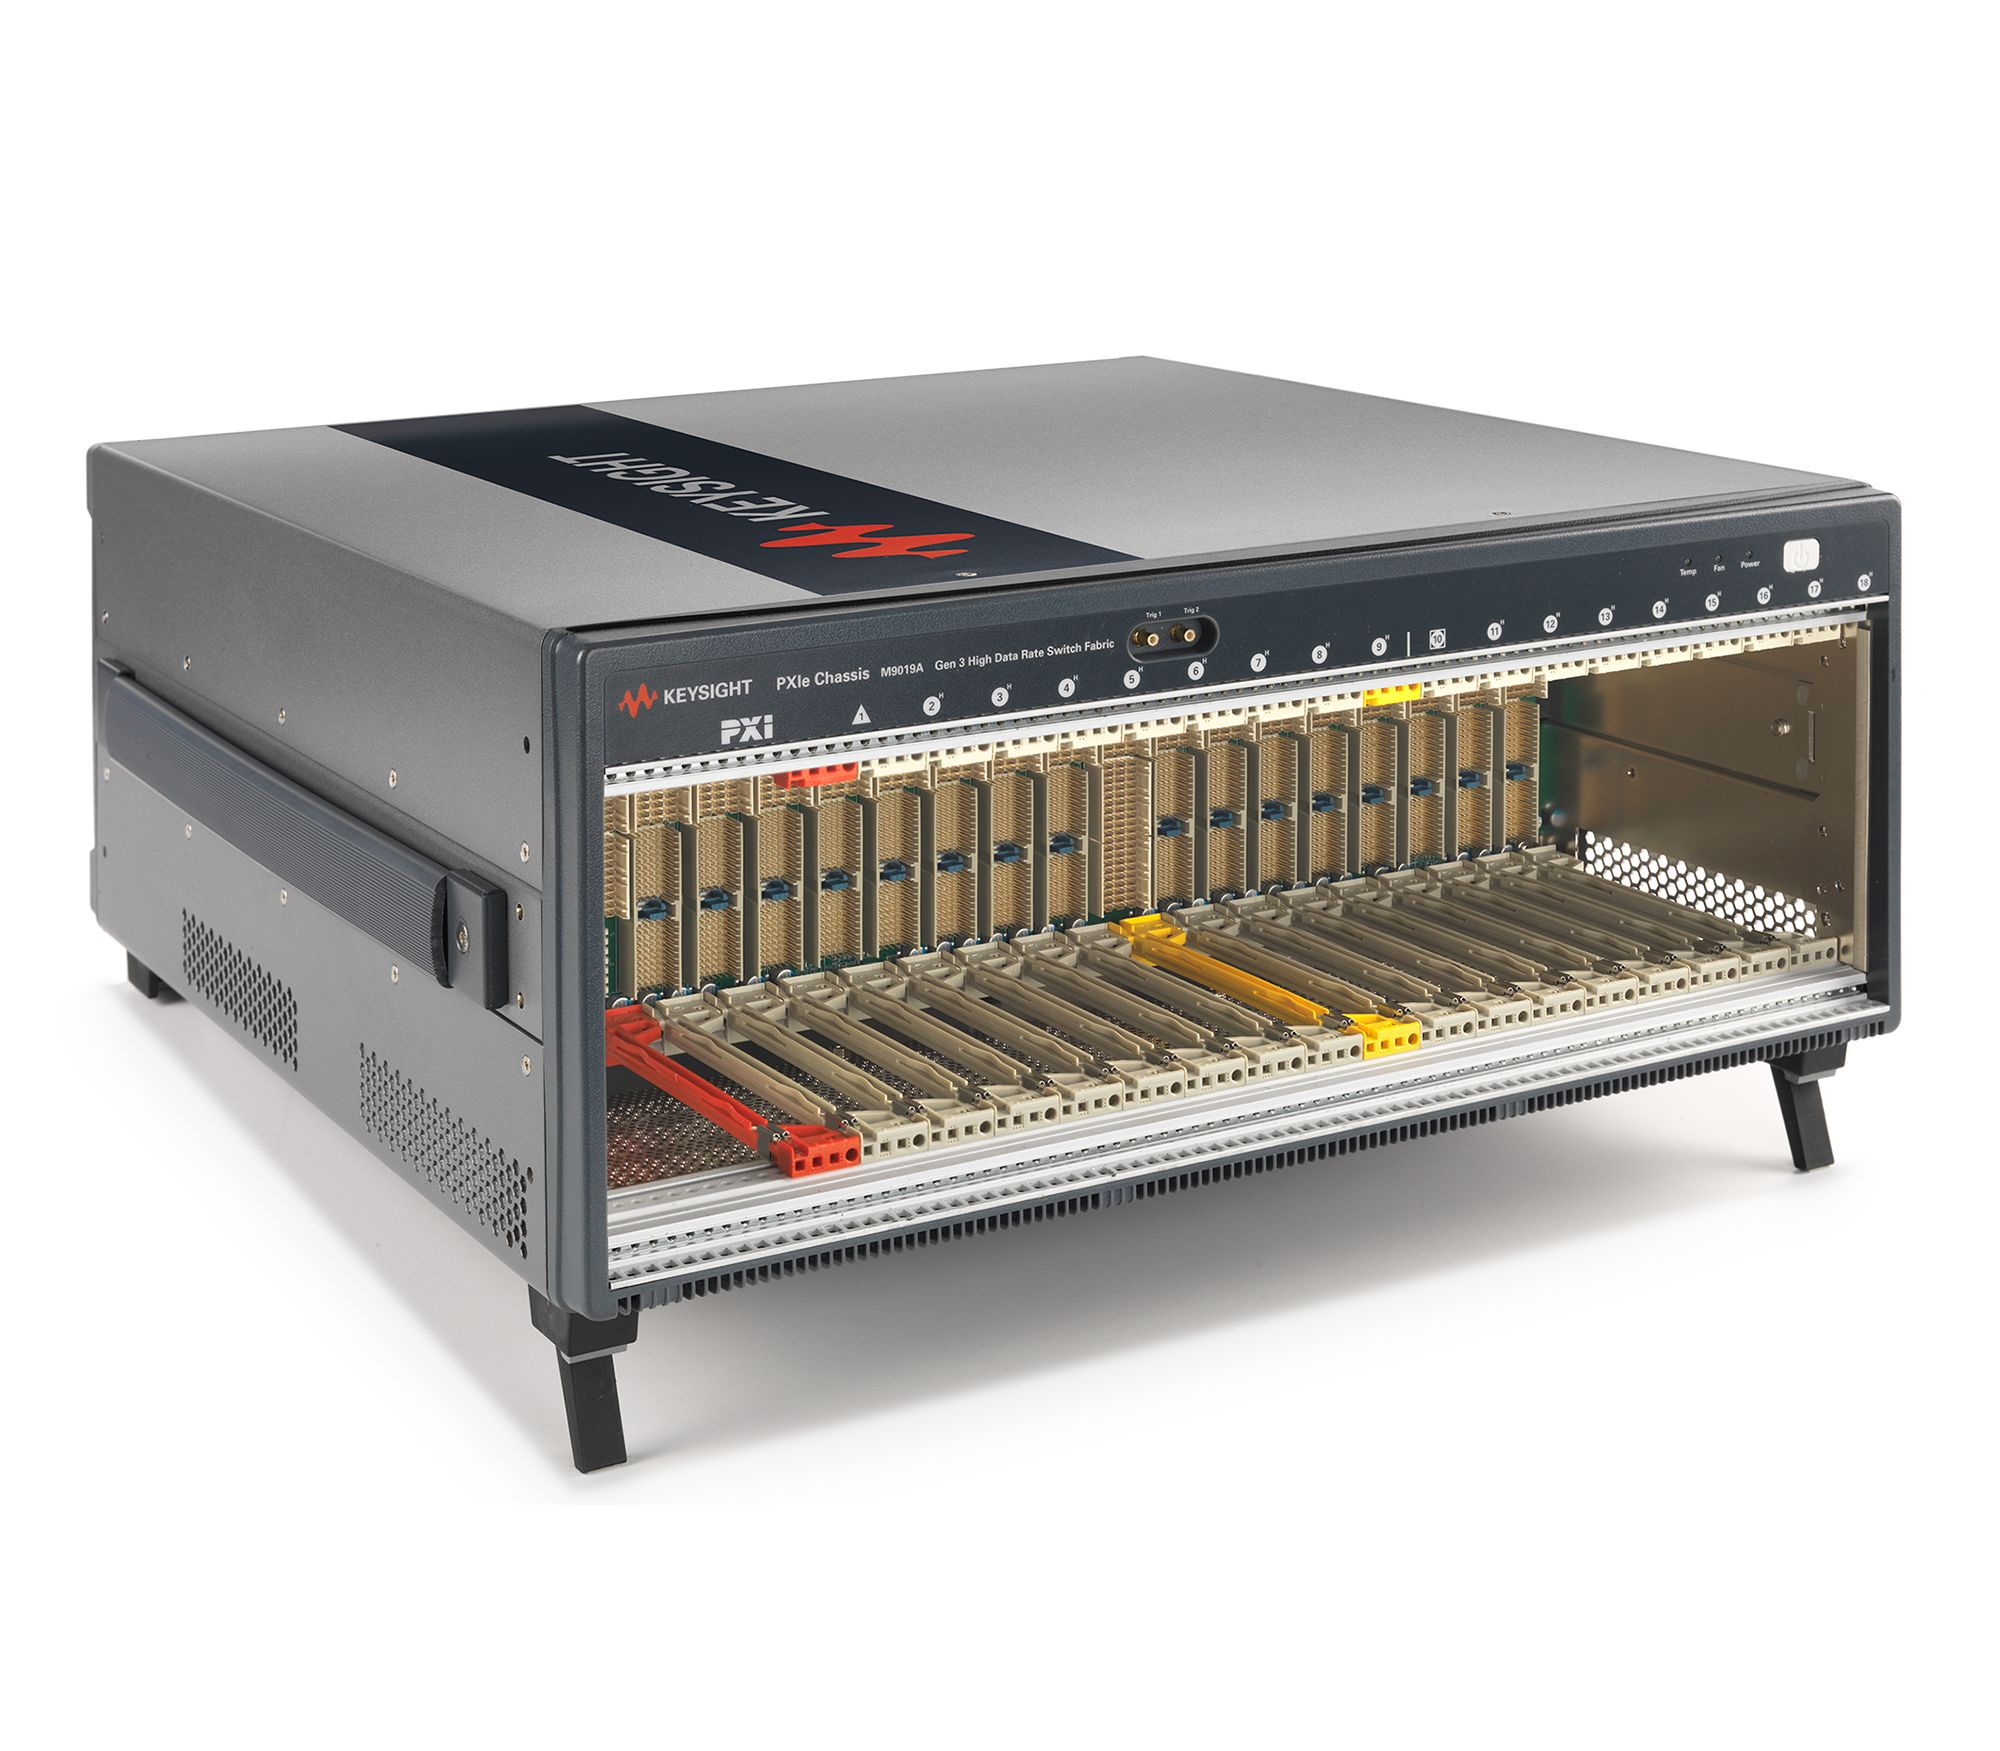 M9019A PXIe Chassis: 18-slot, 3U, 24 GB/s, Gen 3